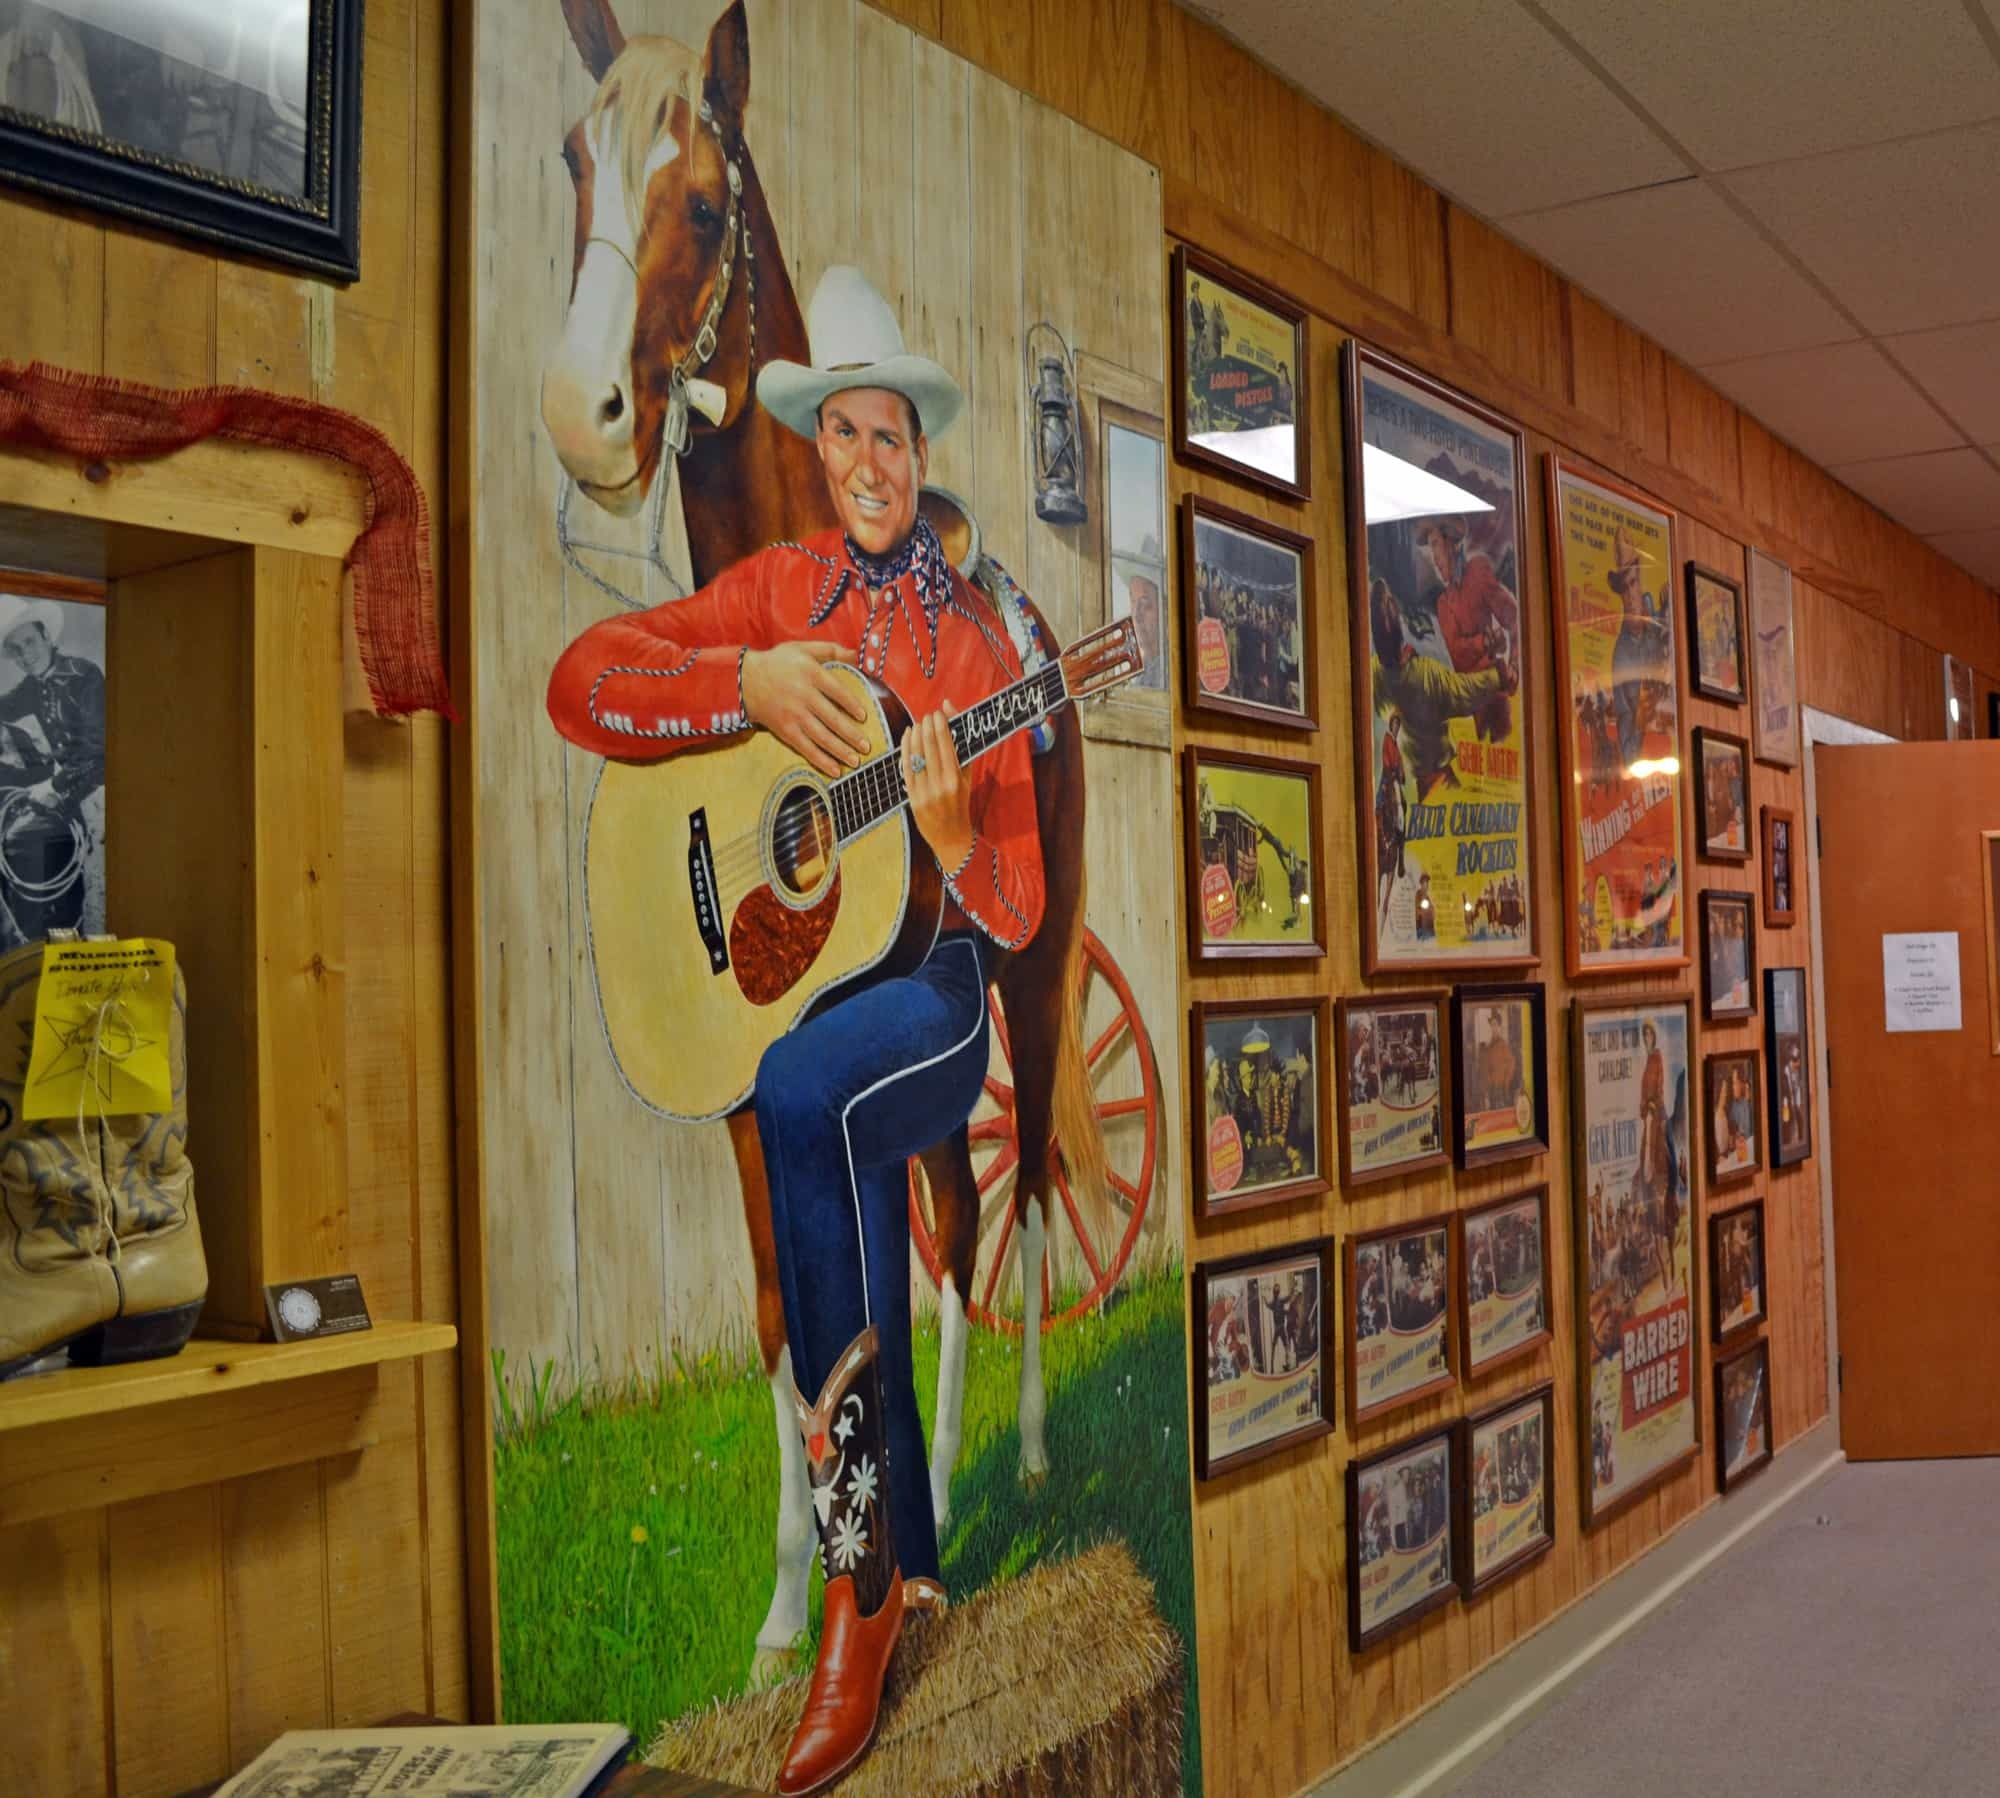 gene autry museum chickasaw country nestled in the small southern town of gene autry the gene autry oklahoma museum houses the largest private b western collection on display in the united